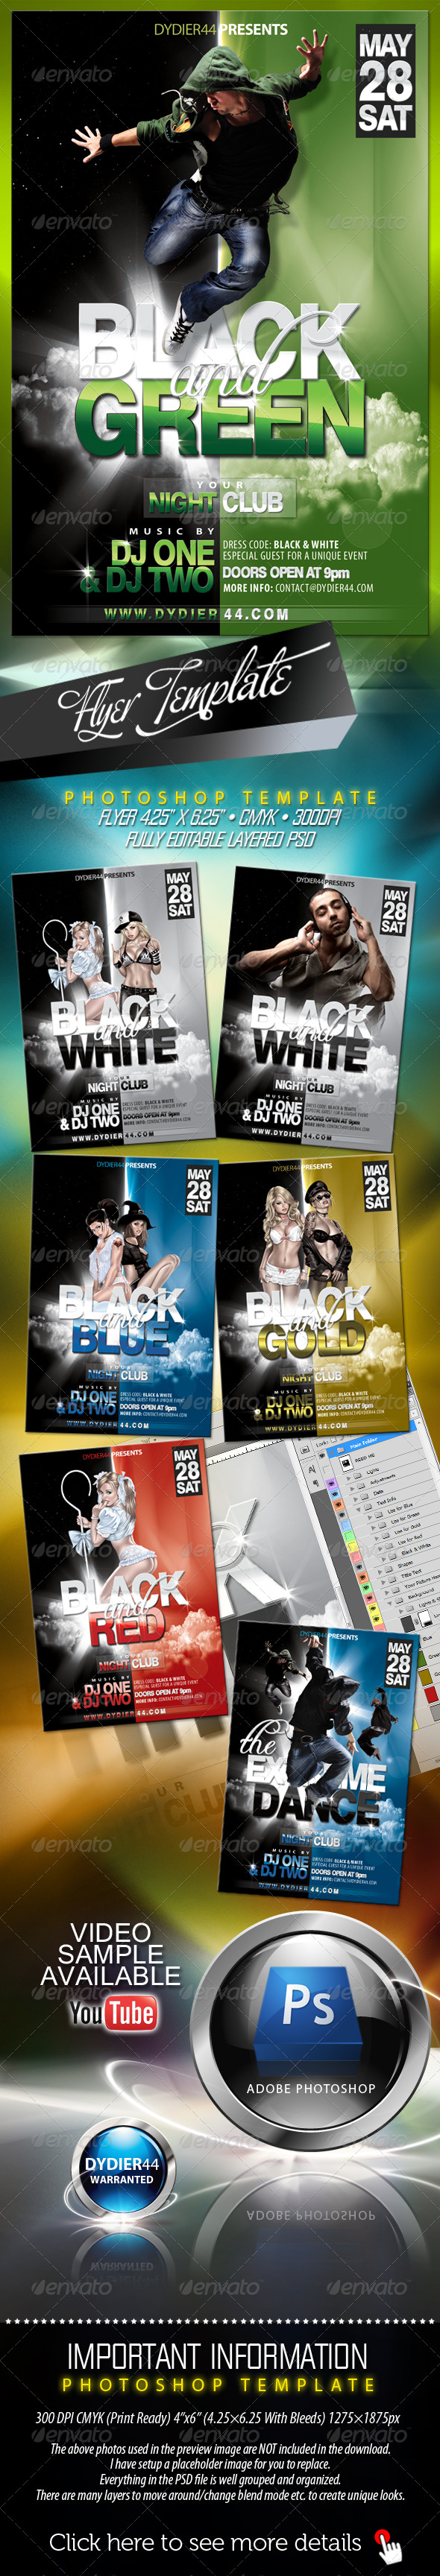 GraphicRiver Black & Green Flyer Template 4x6 242361